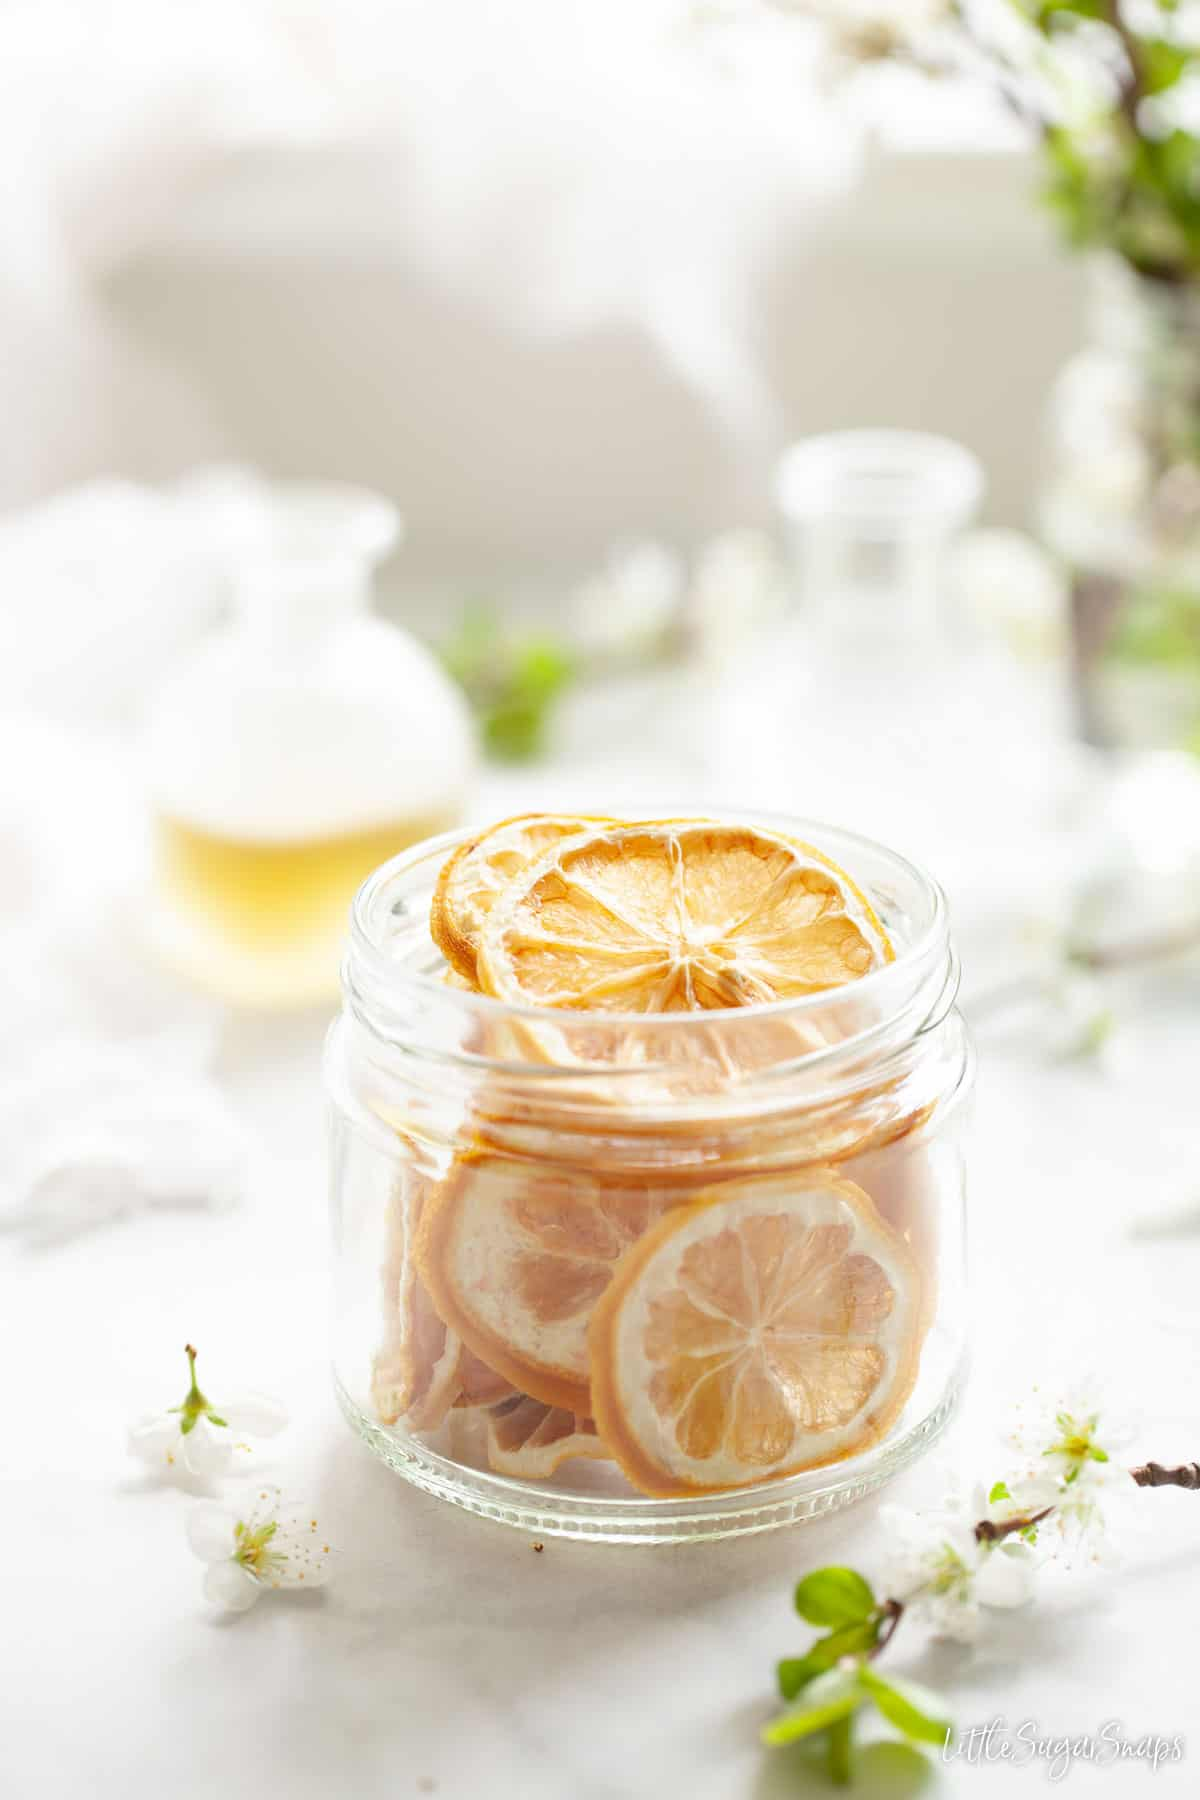 A jar of dehydrated lemon wheels suitable for cocktail or cake garnishes